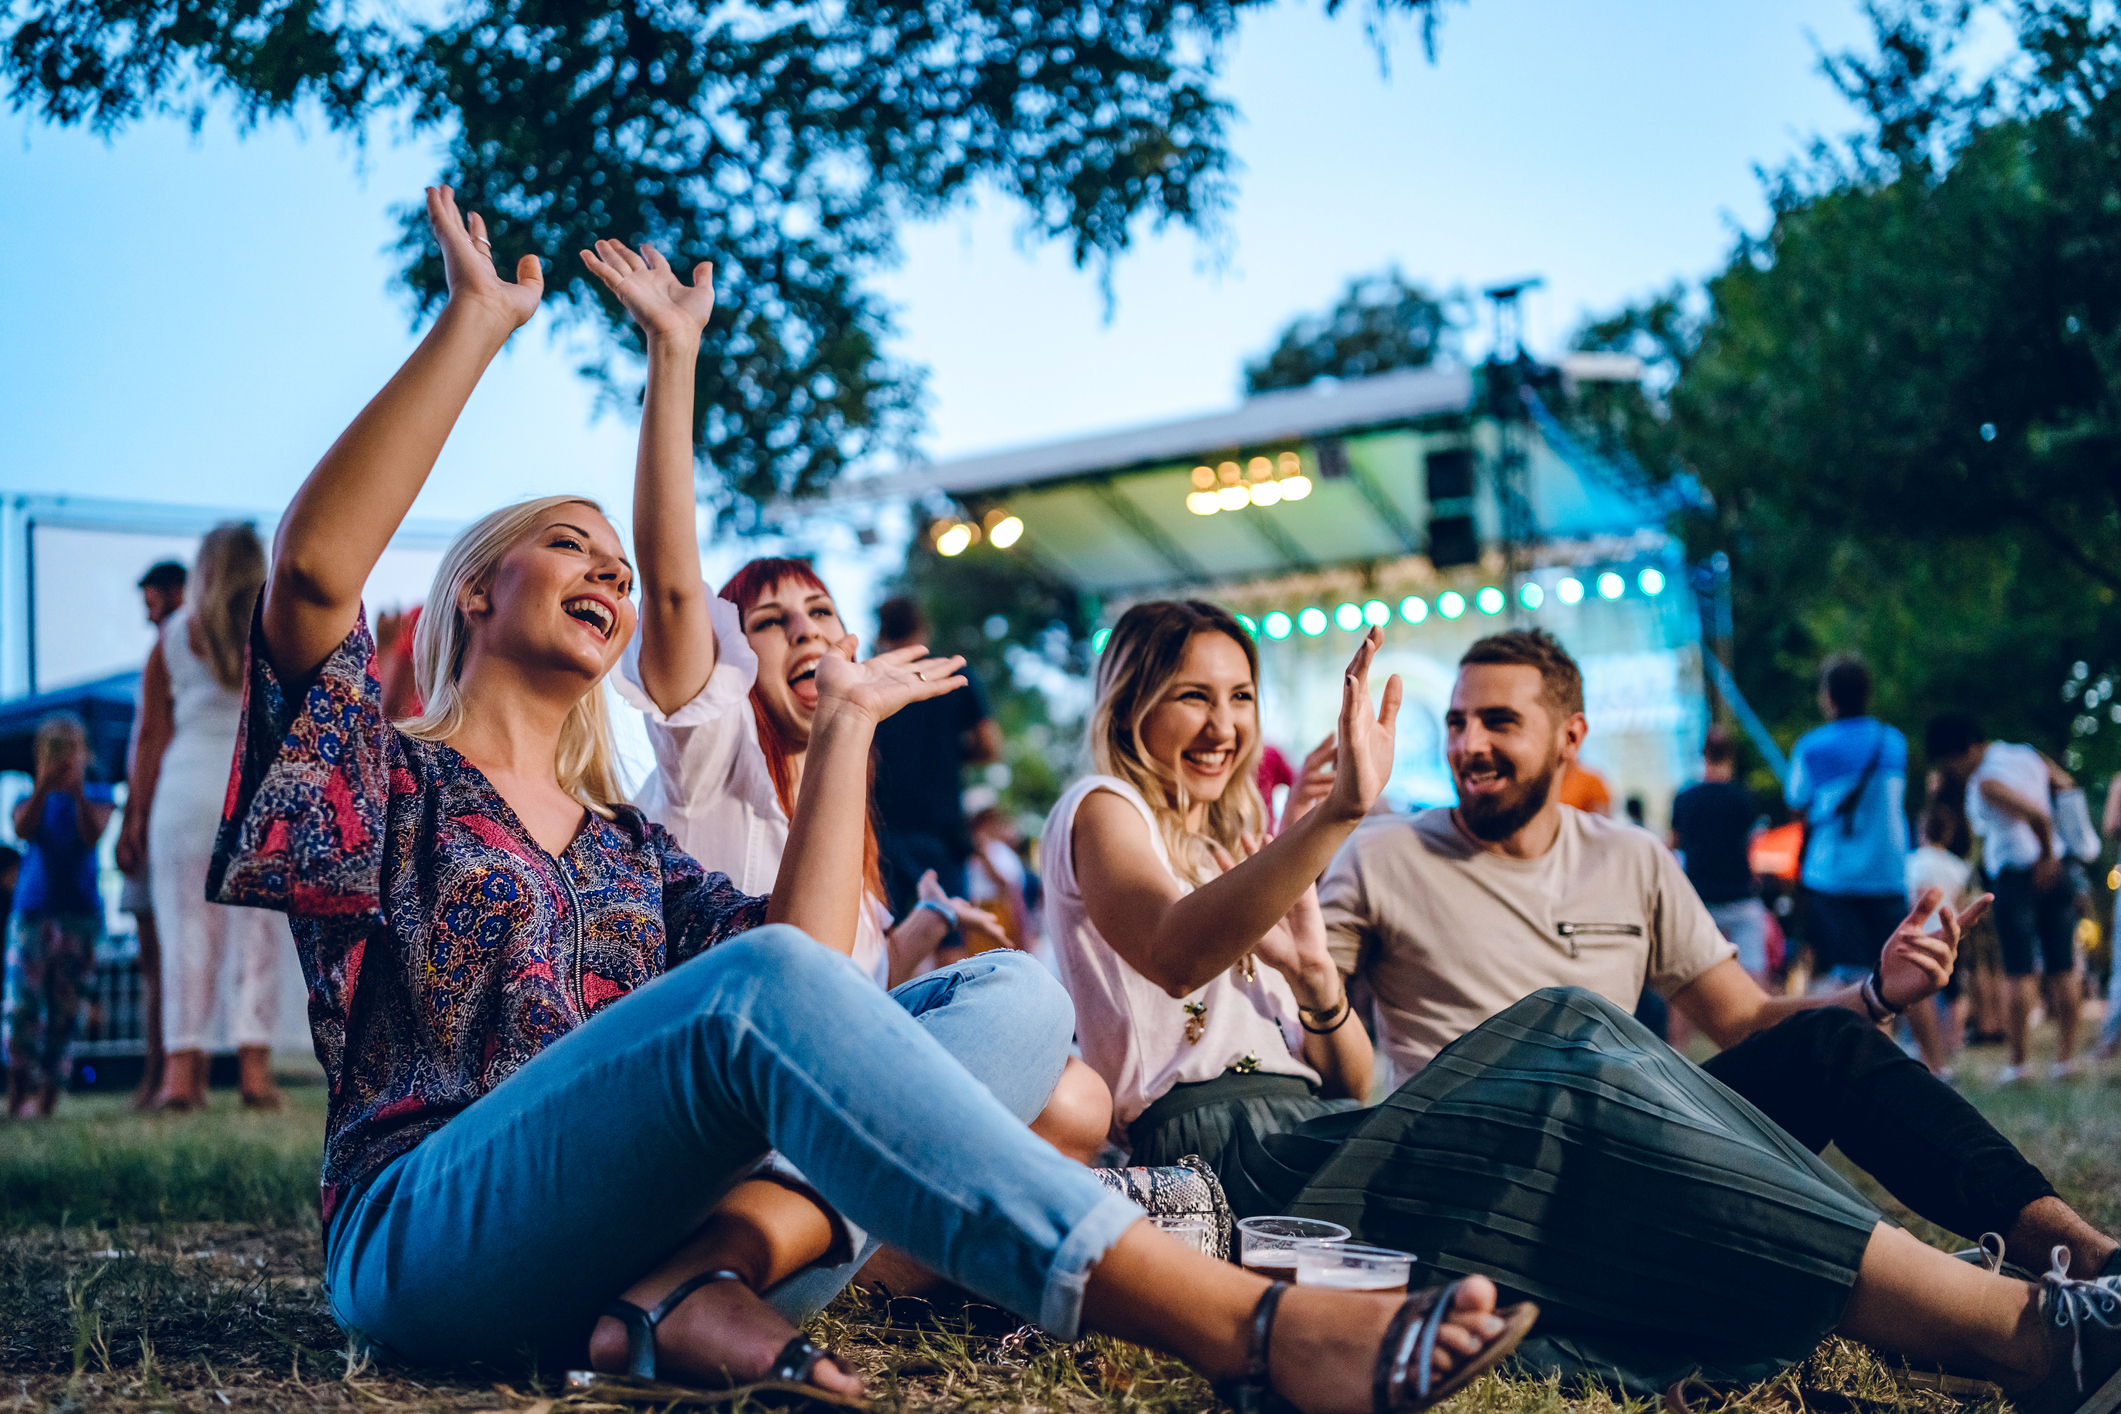 Outdoor concert venue for live entertainment near Lone Tree